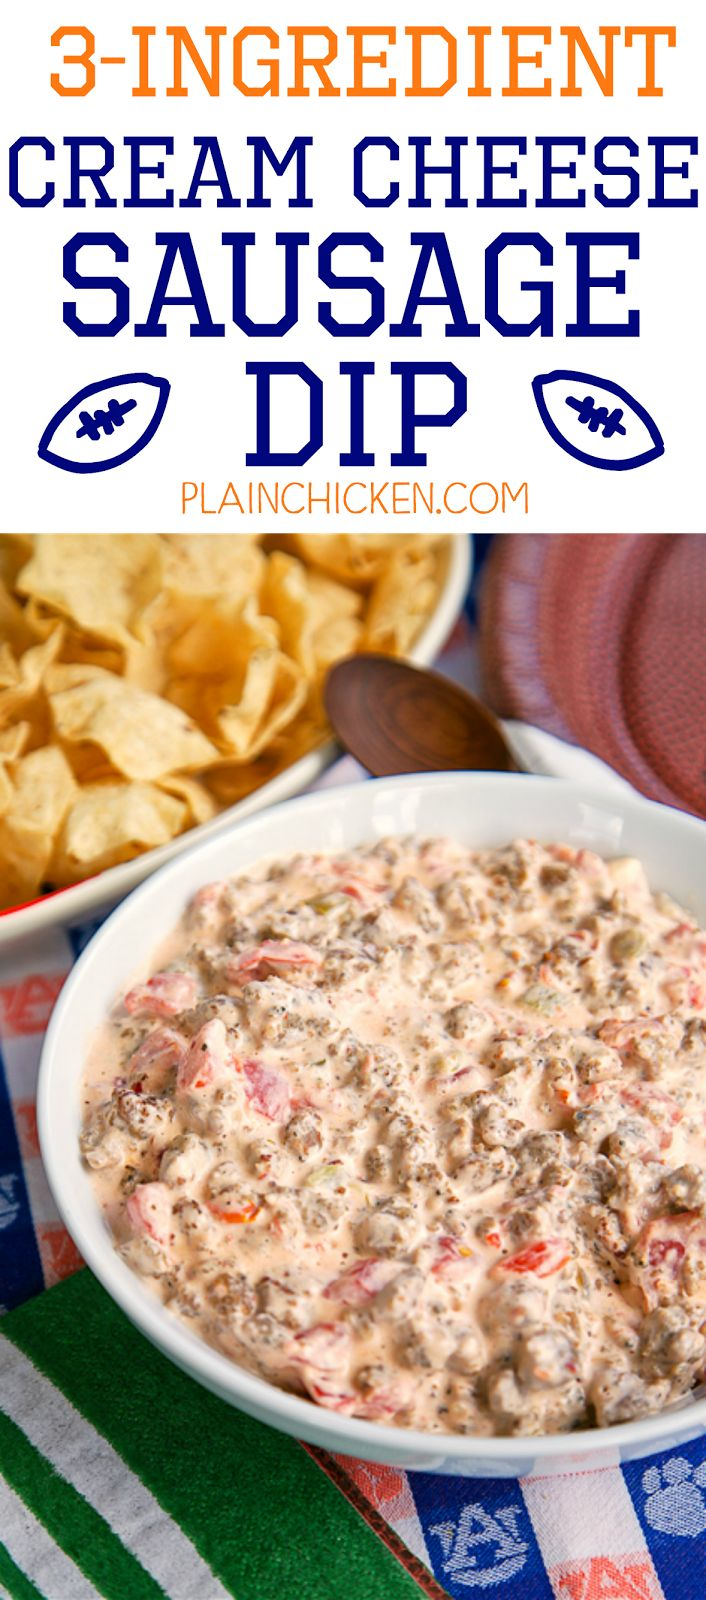 3-Ingredient Cream Cheese Sausage Dip - SOOOO good! Sausage, cream cheese, and Rotel. Ready in under 10 minutes!